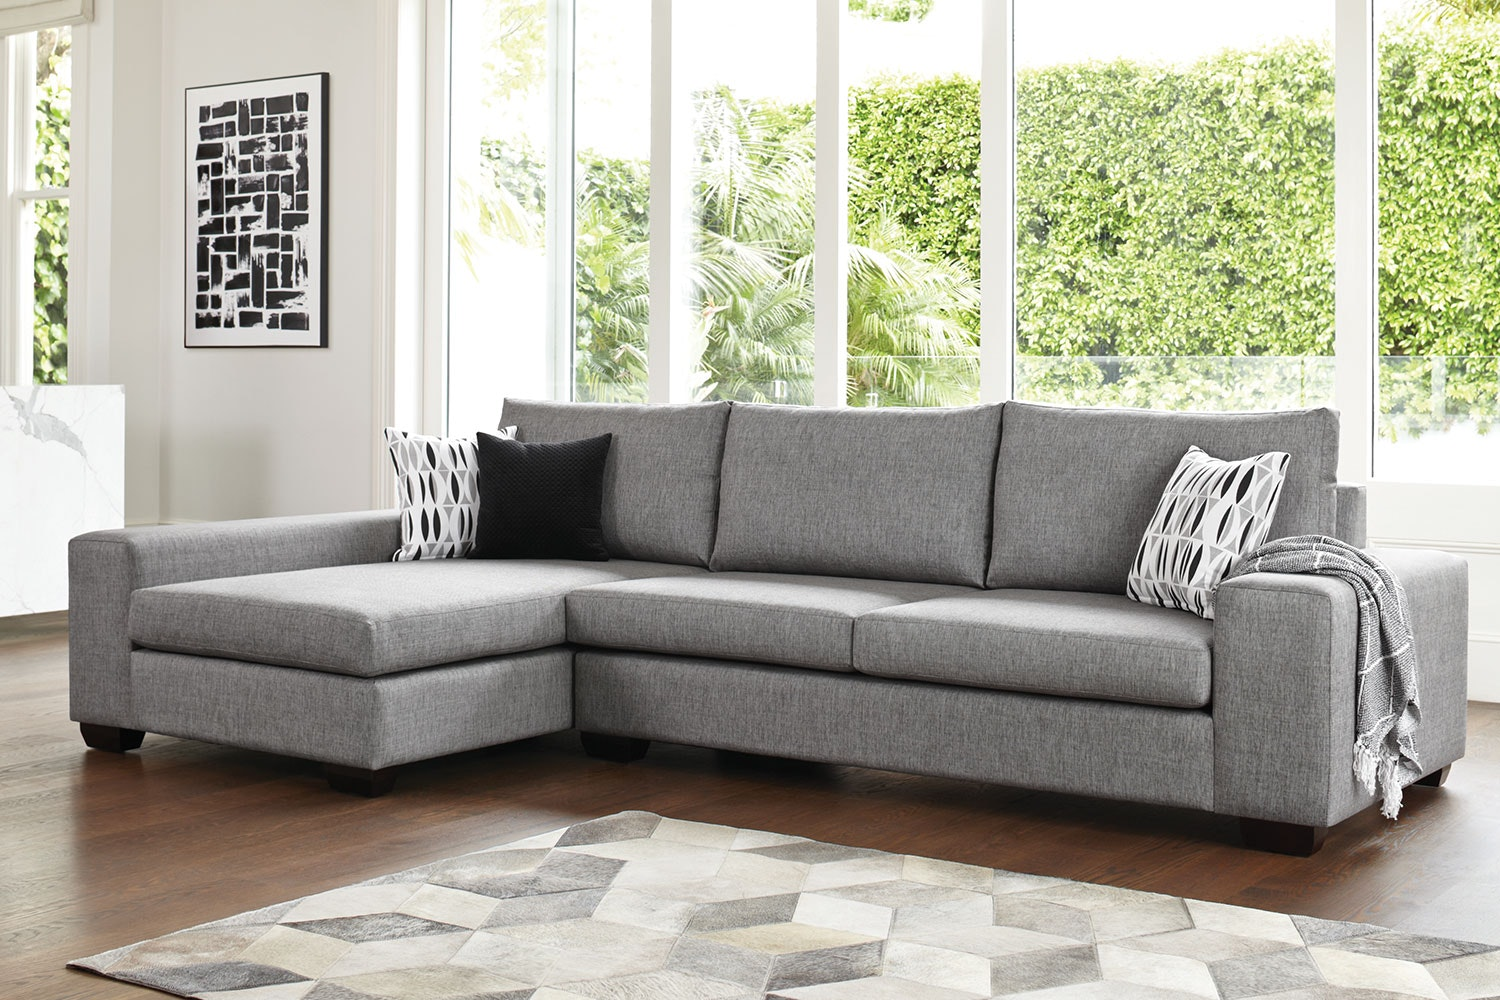 Lounge Suites Couch Ottoman Sofa Packages Harvey Norman New  ~ Sofa With Chaise Ottoman